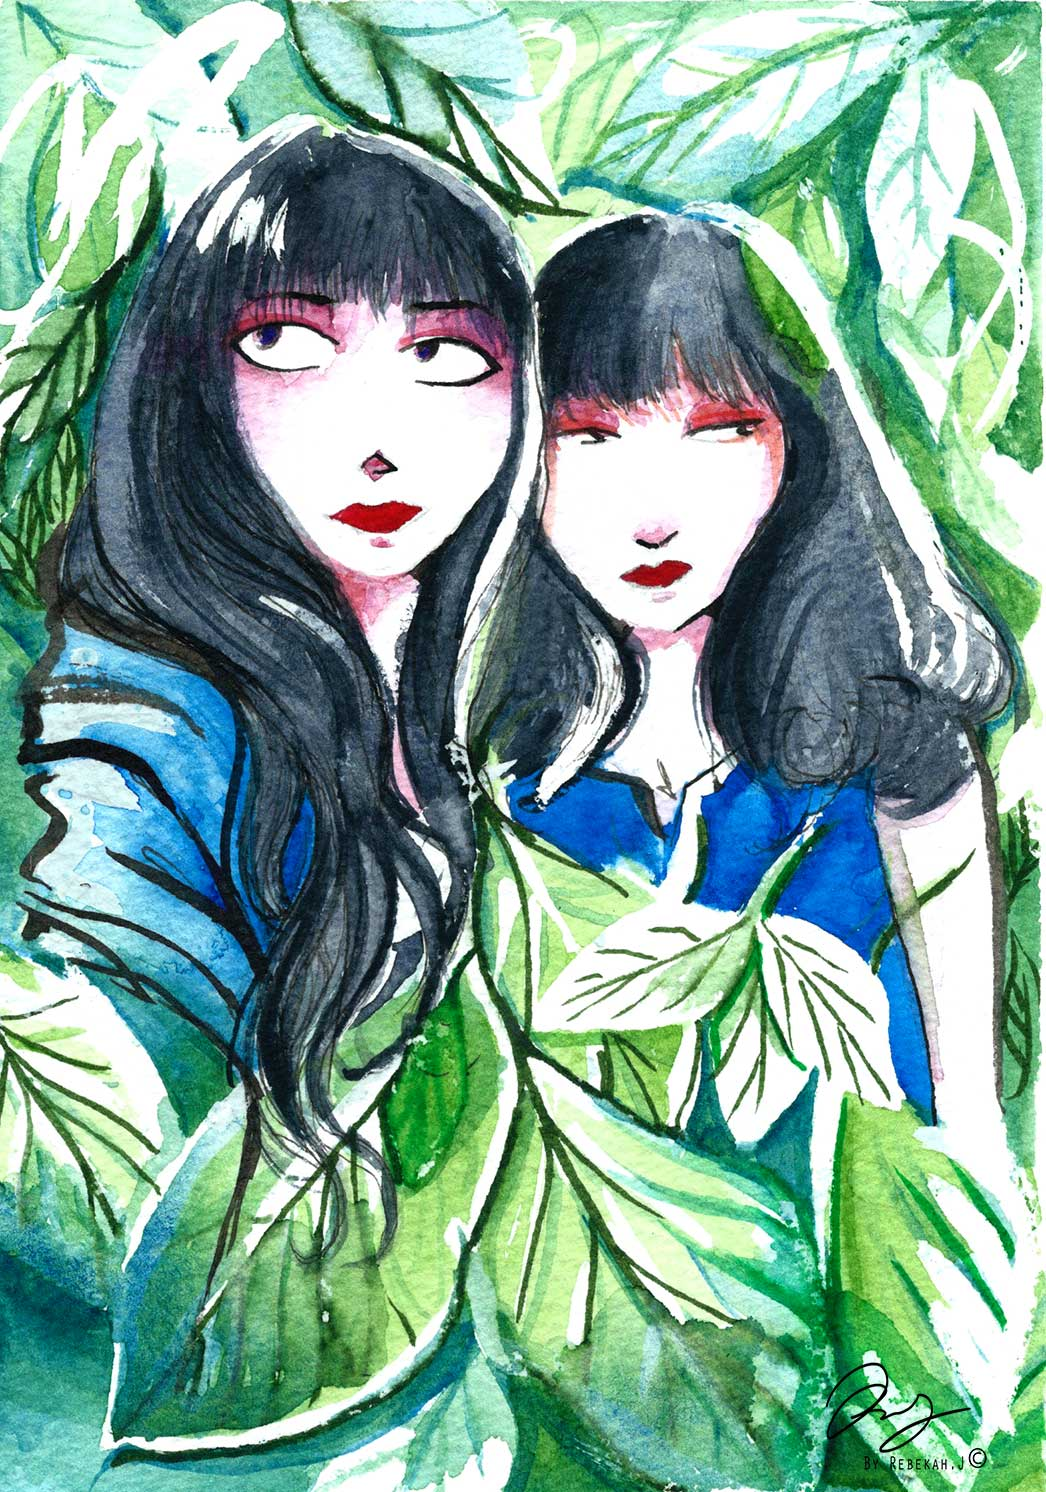 Watercolour portrait sister love, by Rebekah Joseph 2016